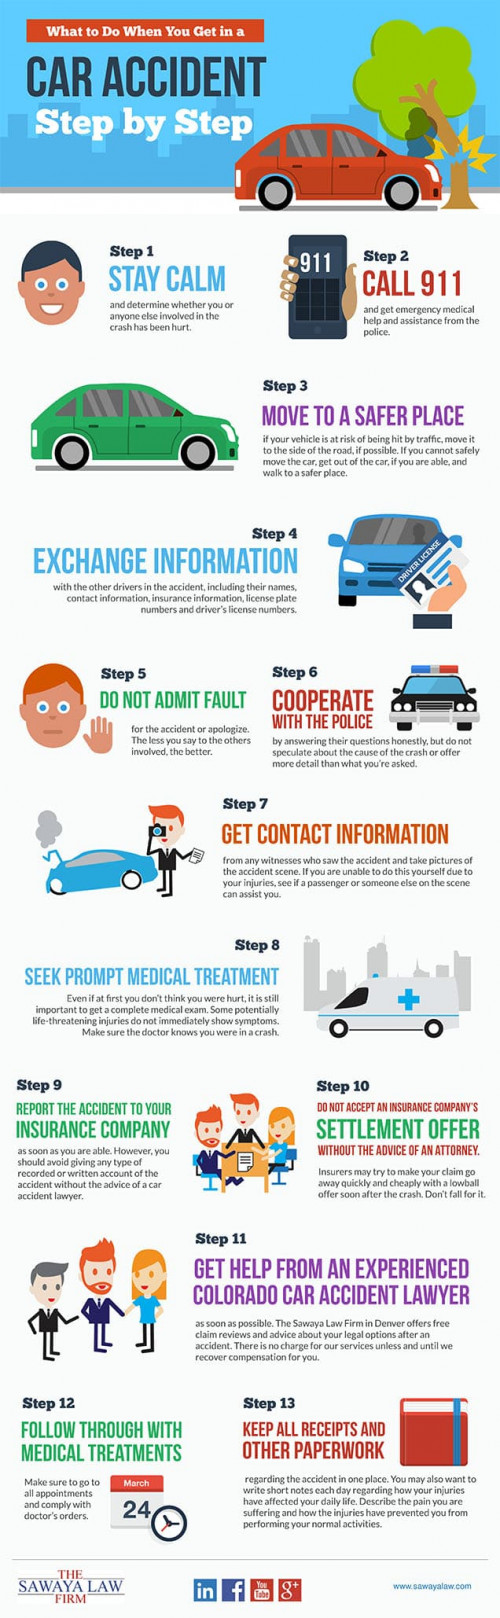 car-accident-infographic.jpg